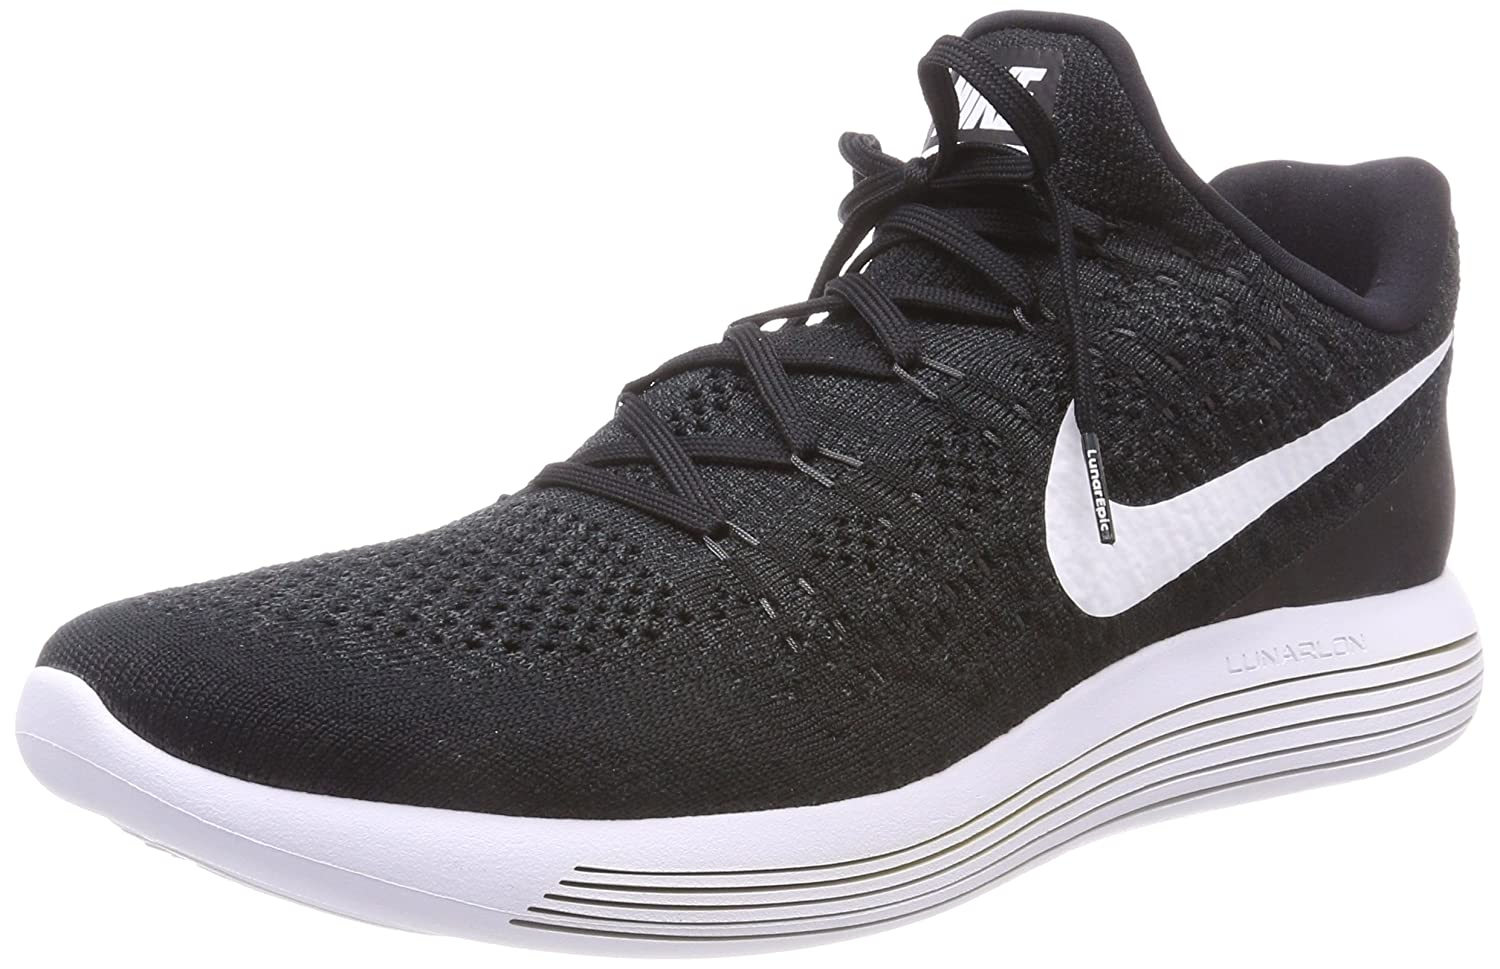 Amazon.com | Nike Lunarepic Low Flyknit 2 Mens Road Running Shoes 863779-001 Size 6.5 D(M) US | Running